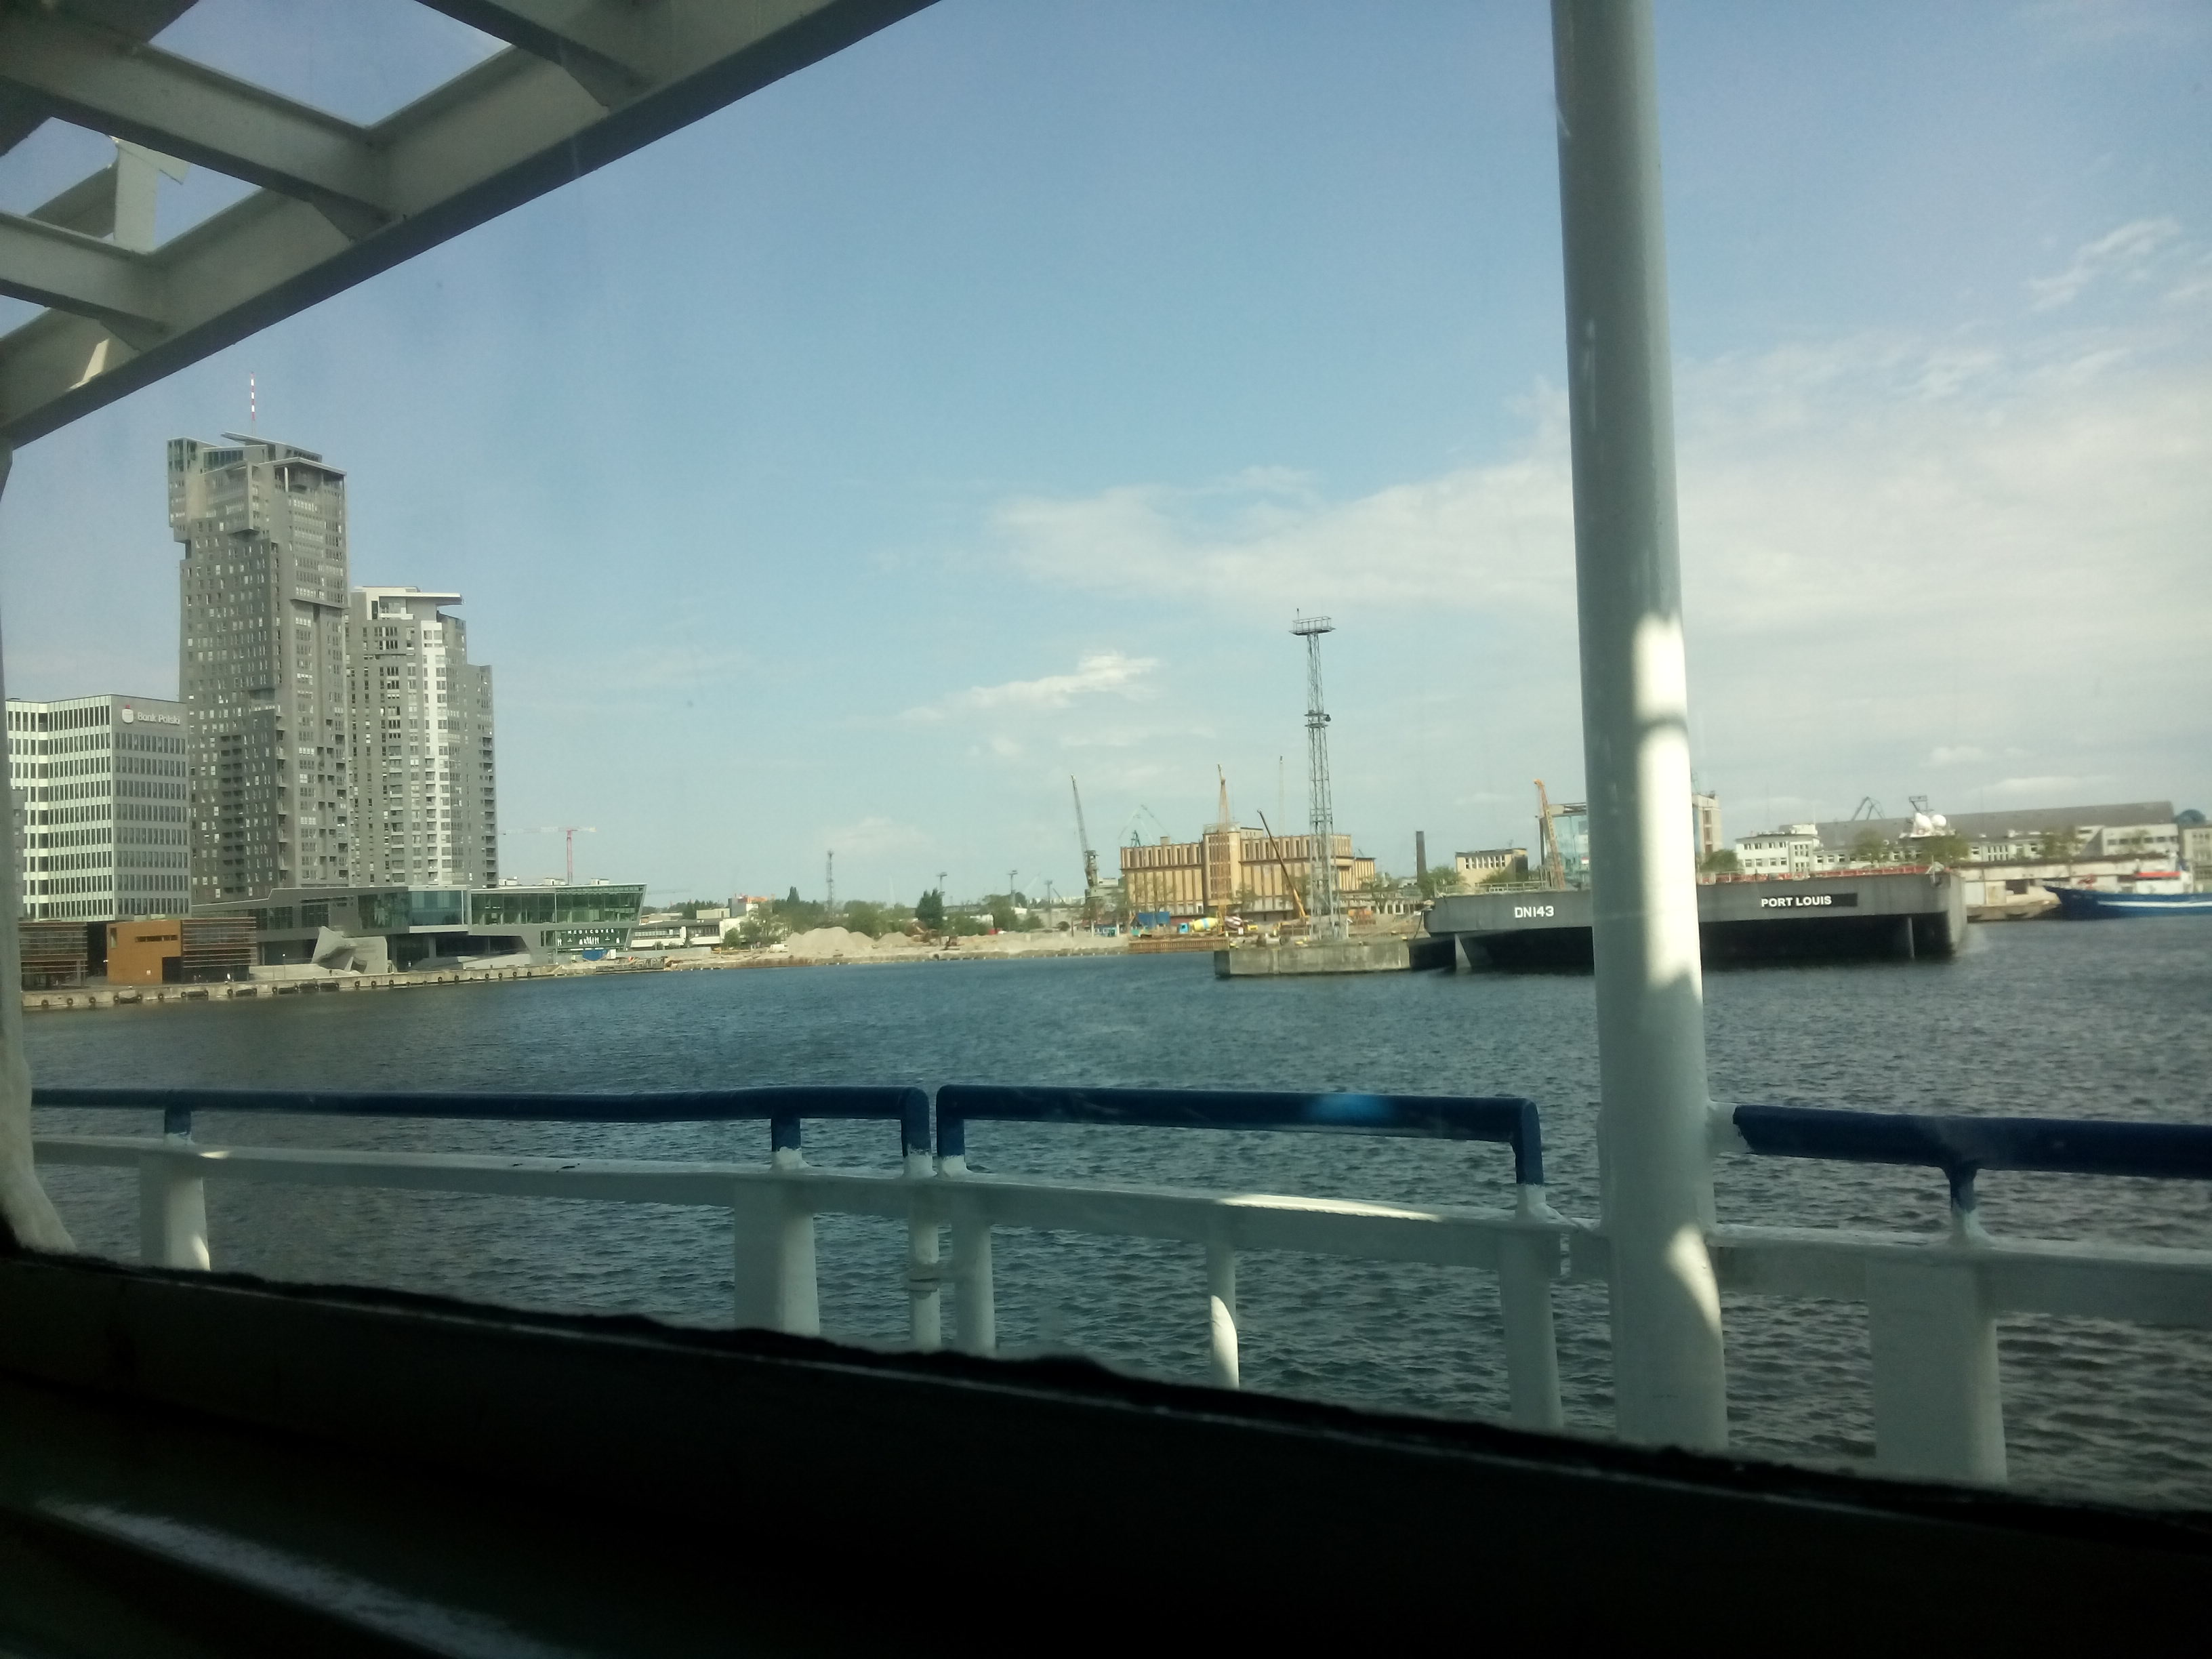 View from inside a ferry across a port to a city